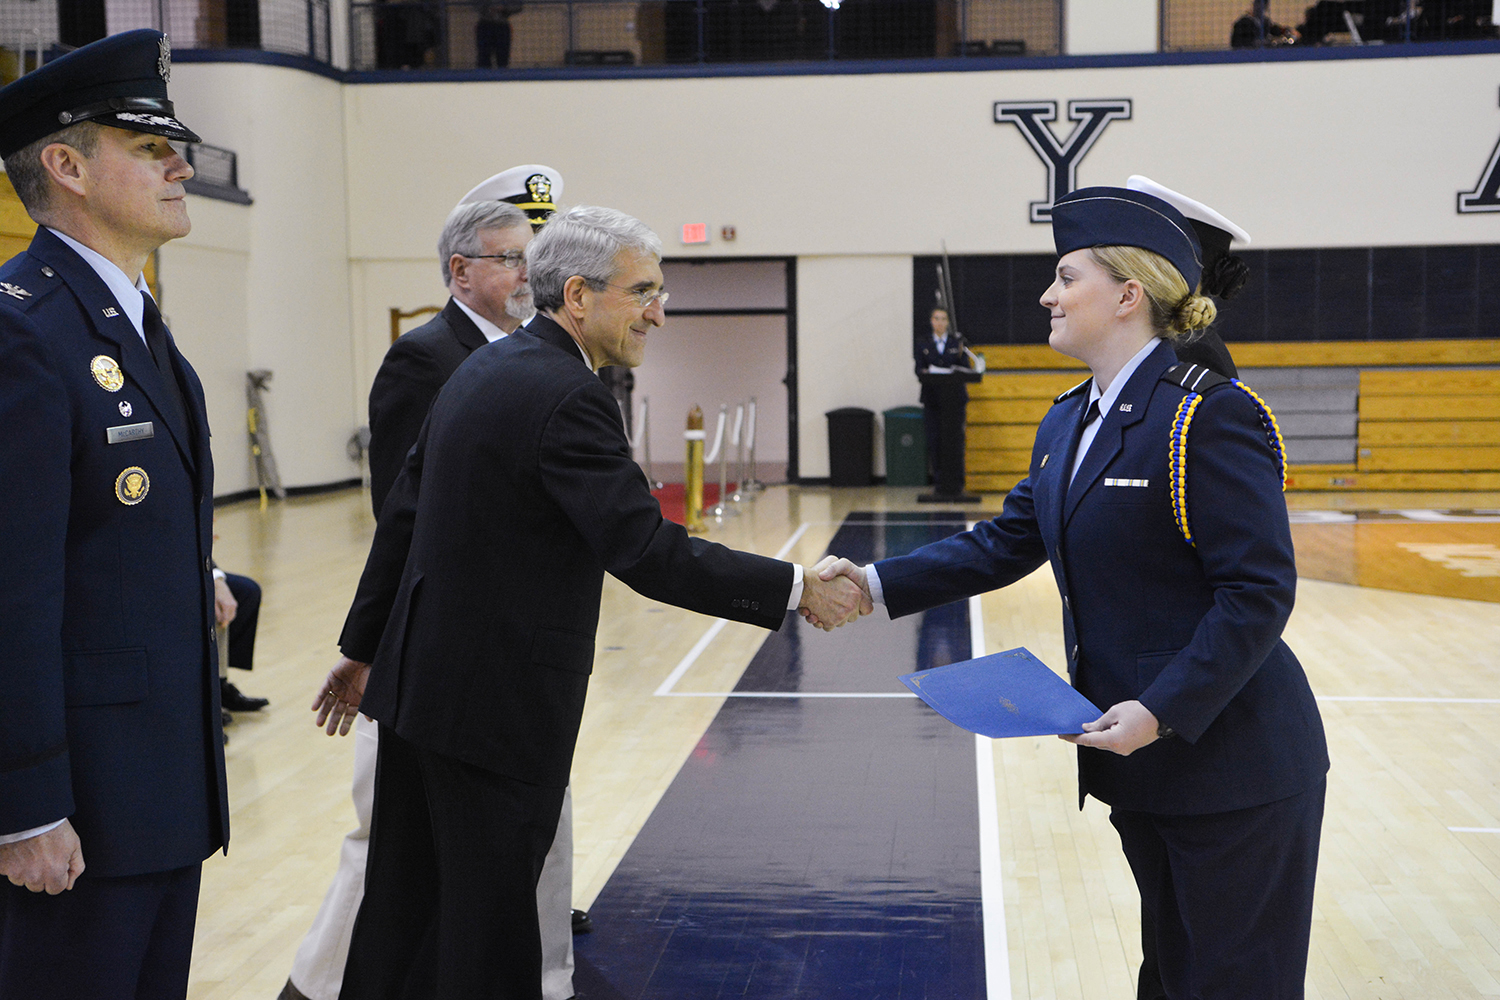 President Salovey shakes hands with ROTC student.